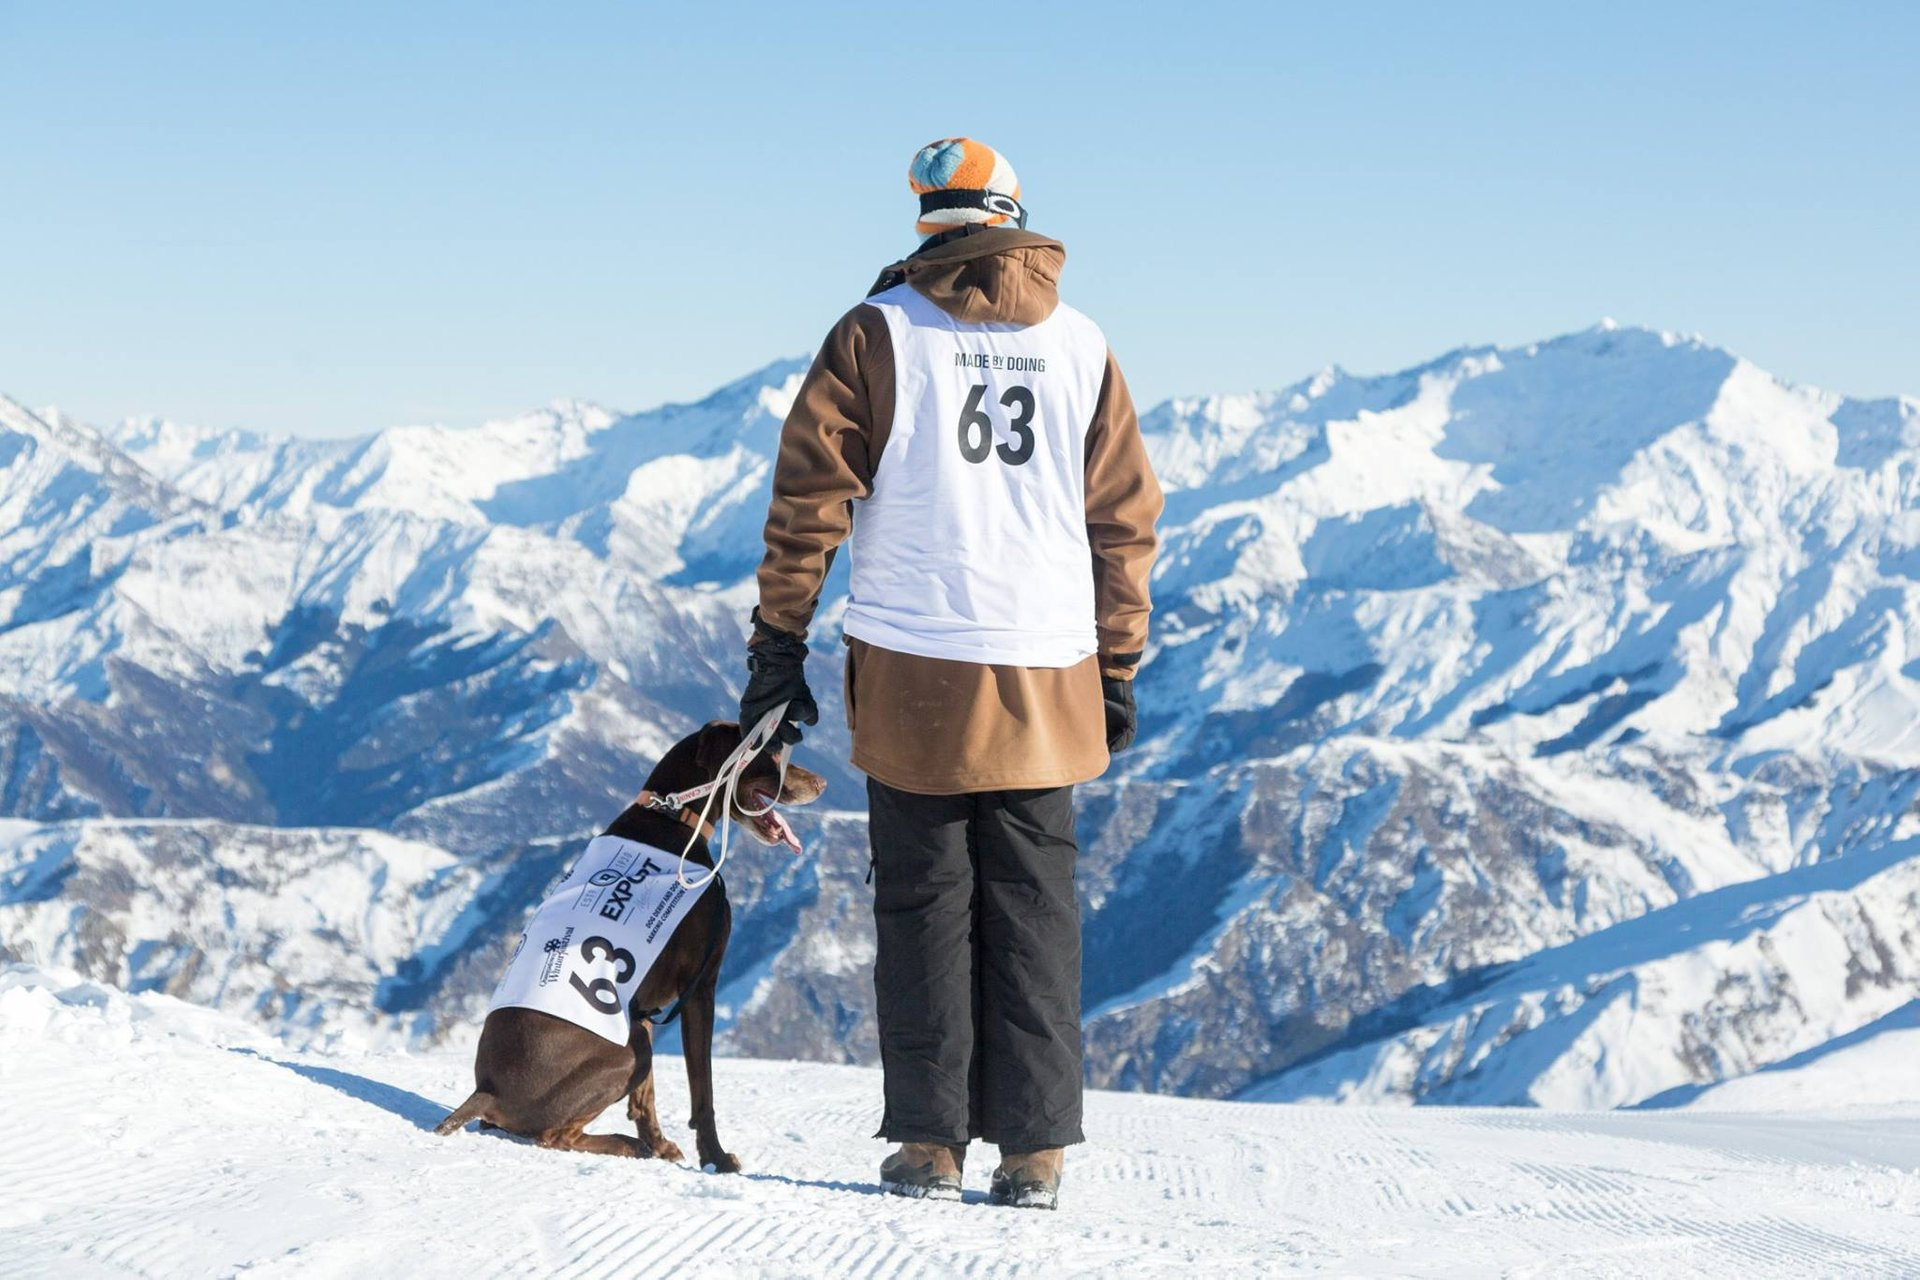 Best time to see Monteith's Dog Derby in Queenstown in New Zealand 2019